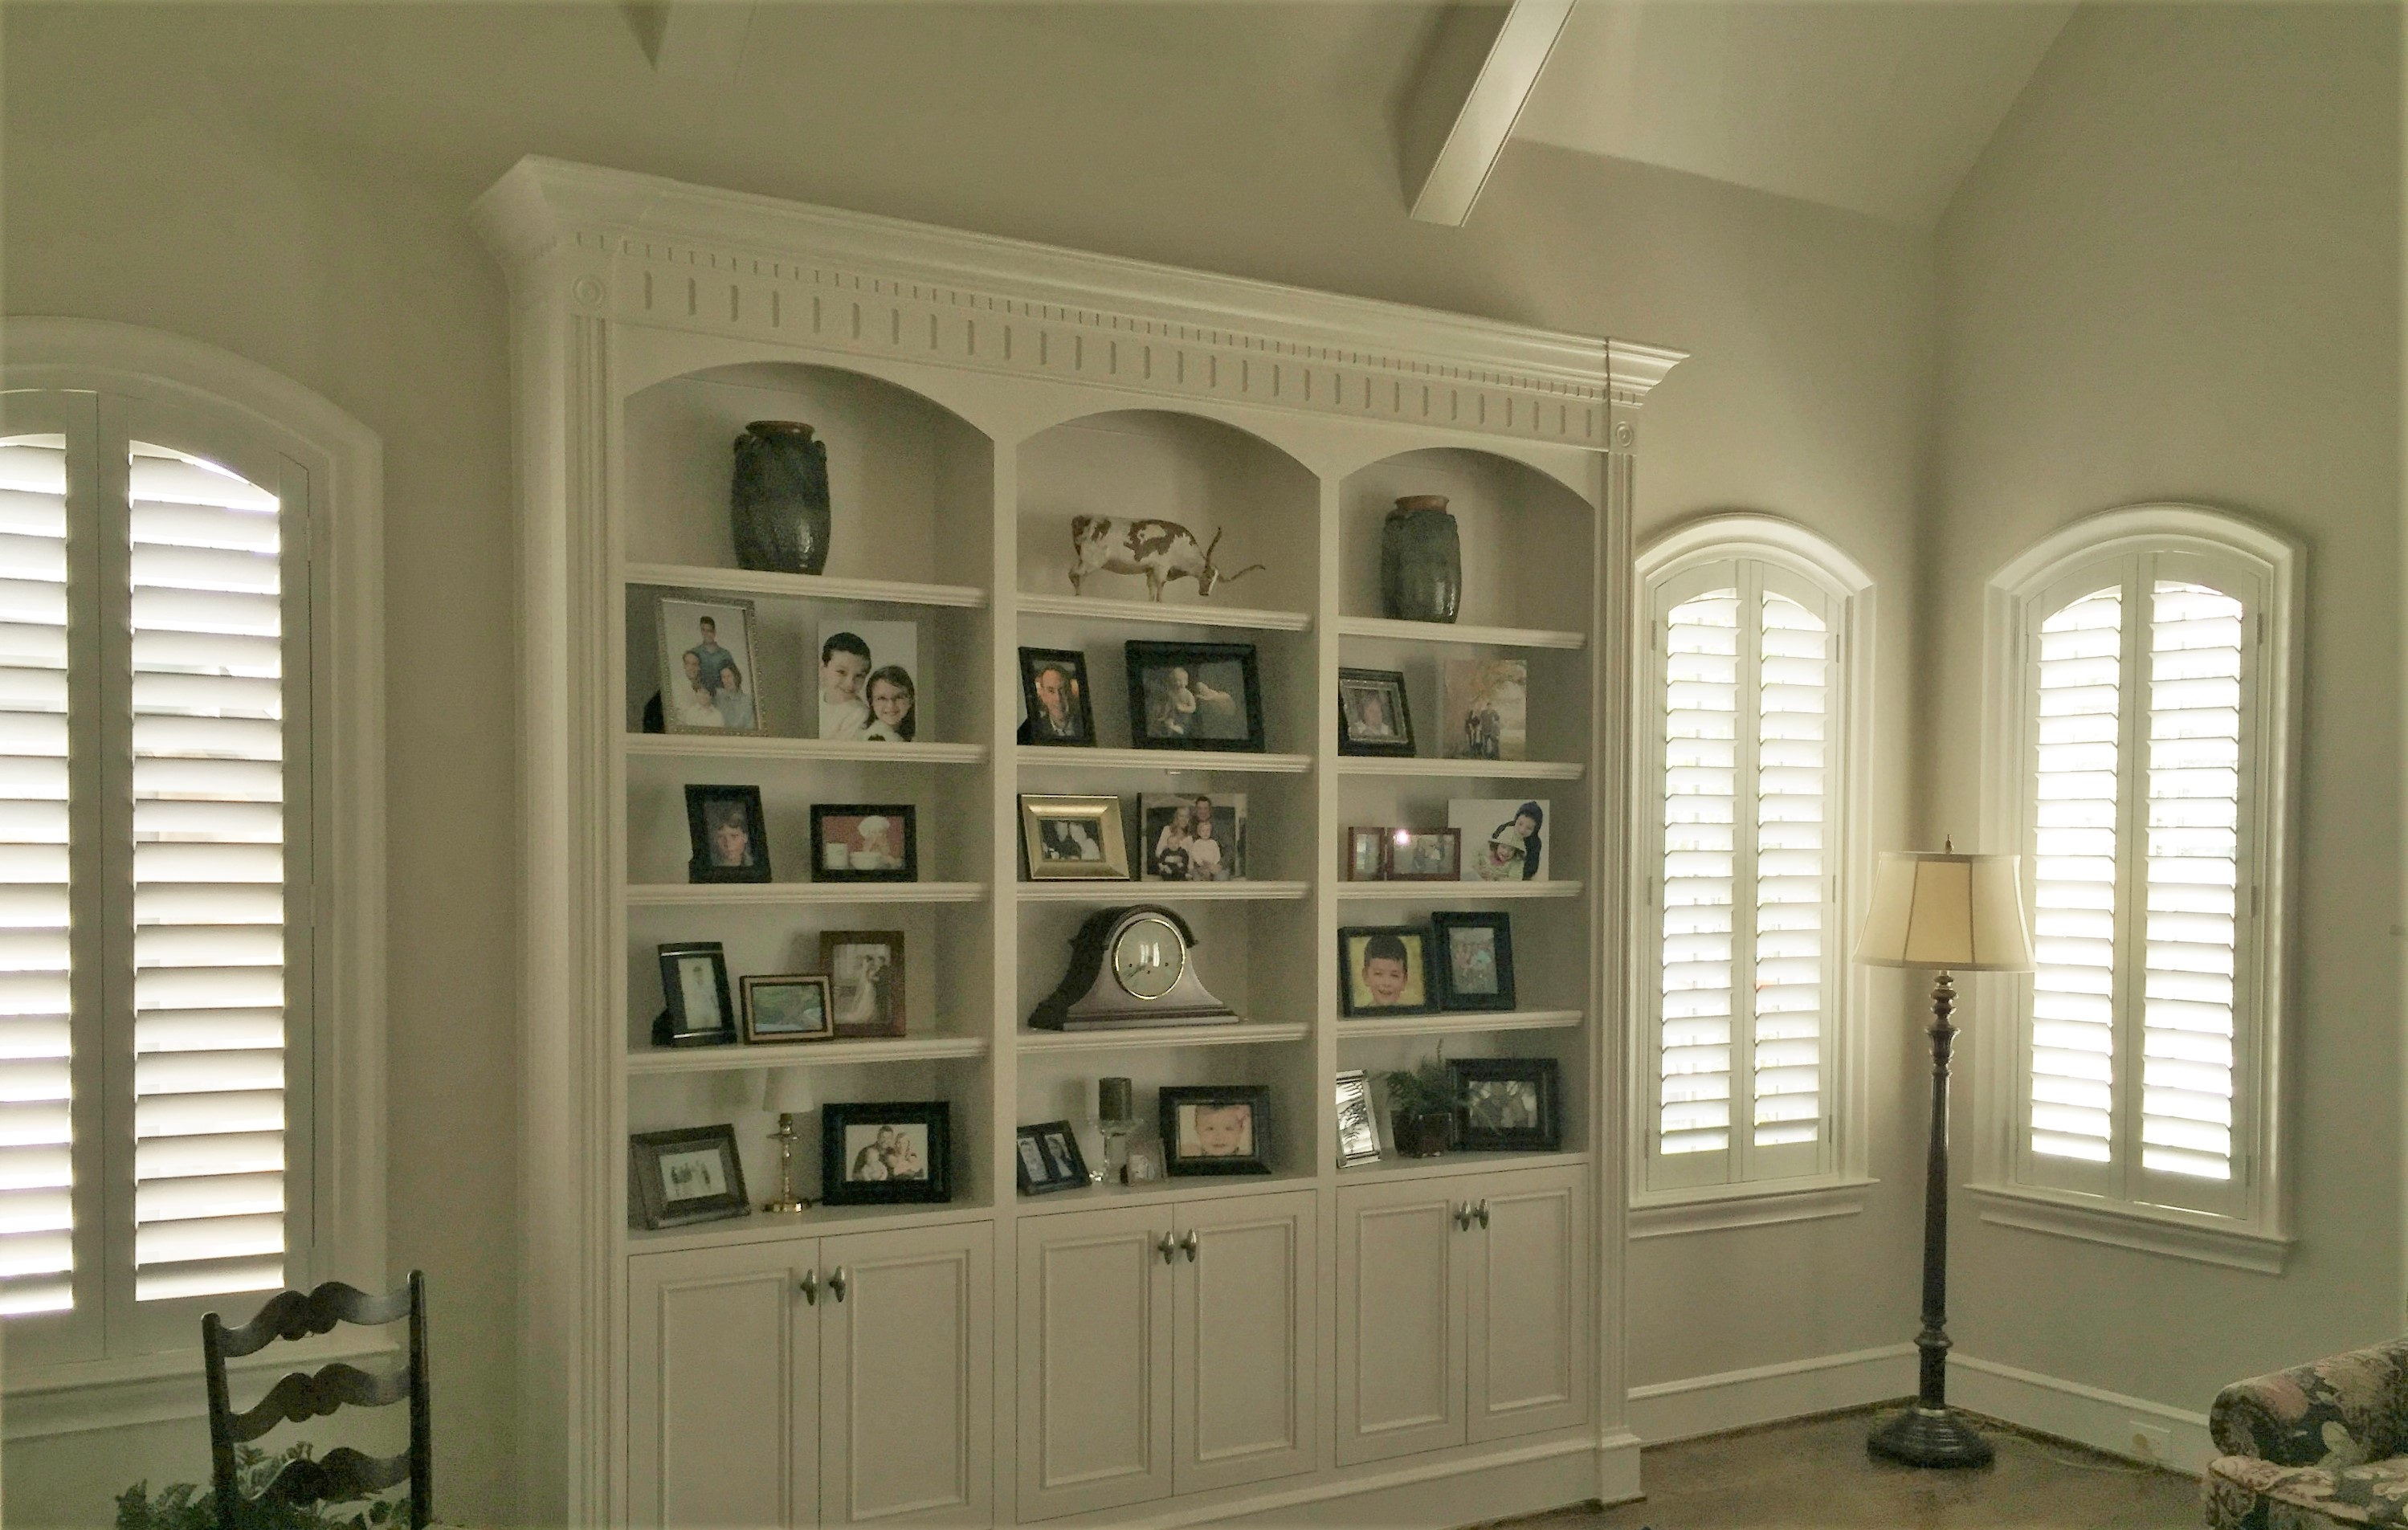 Specialty Shaped Windows Can Make A Statement And Shutters Let The Speak For Themselves